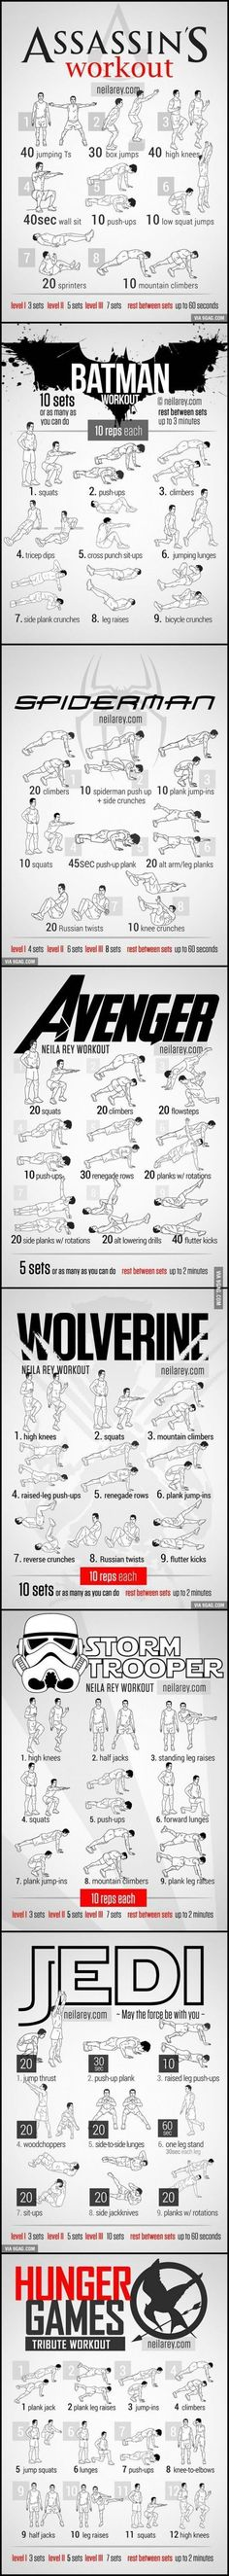 Workout-for-Assassin-Batman-Spiderman-Avenger-Wolv http://whymattress.com/the-ultimate-yoga-guide